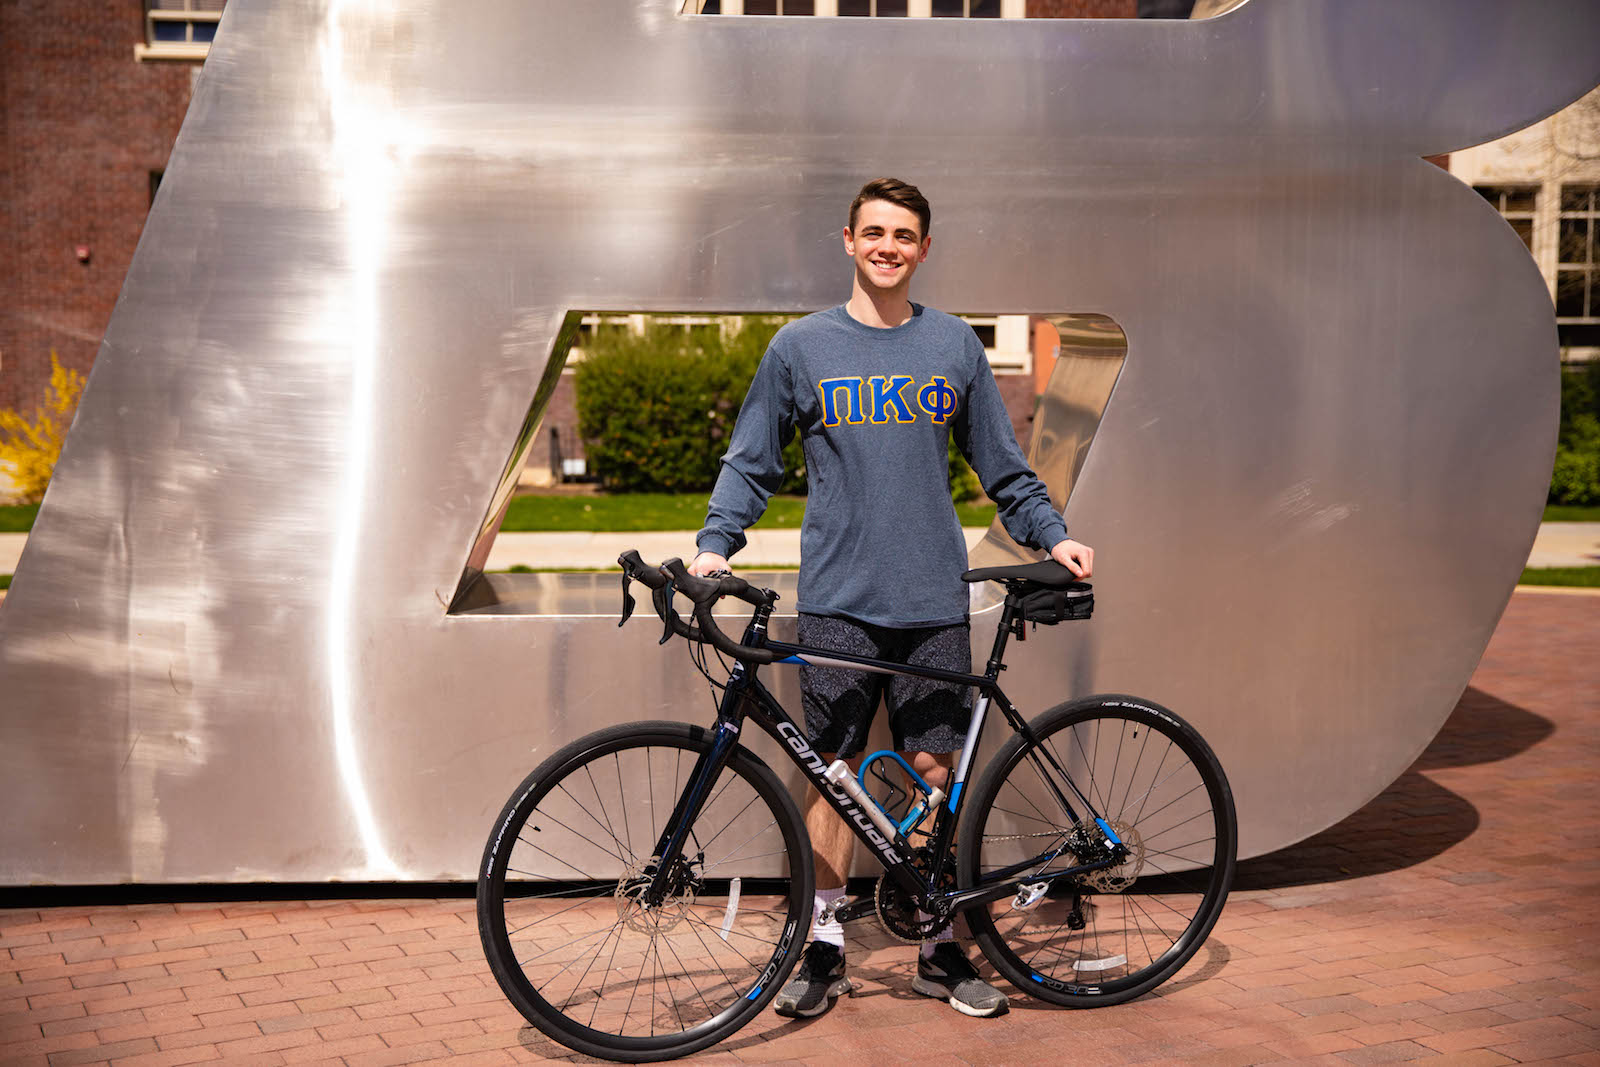 Grad to Cycle Across Country to Raise Money, Awareness for Those With Special Needs - Boise State News